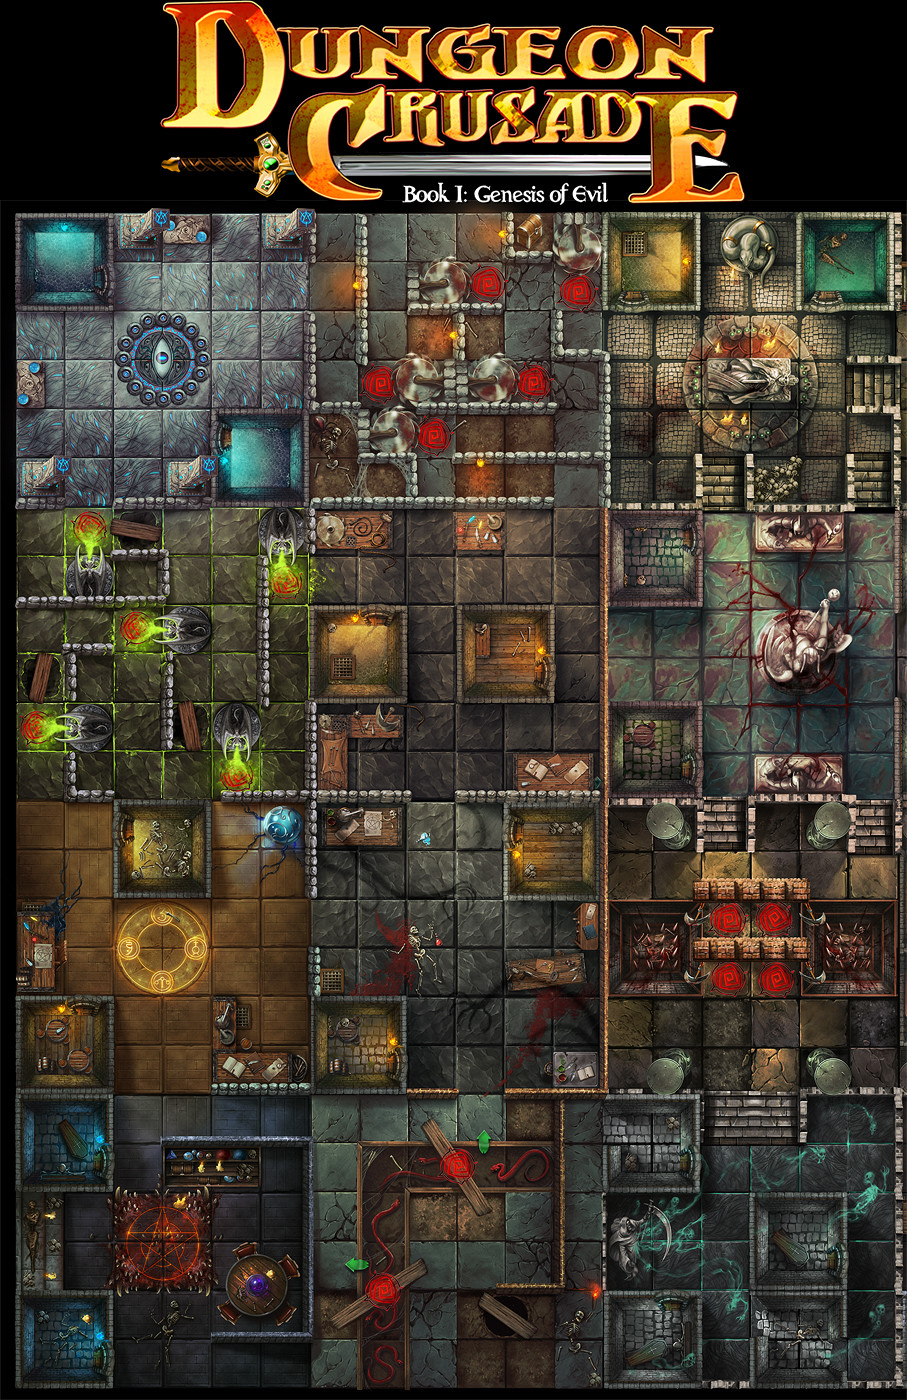 Dungeon Crusade - The Tomb of Kaladar game board